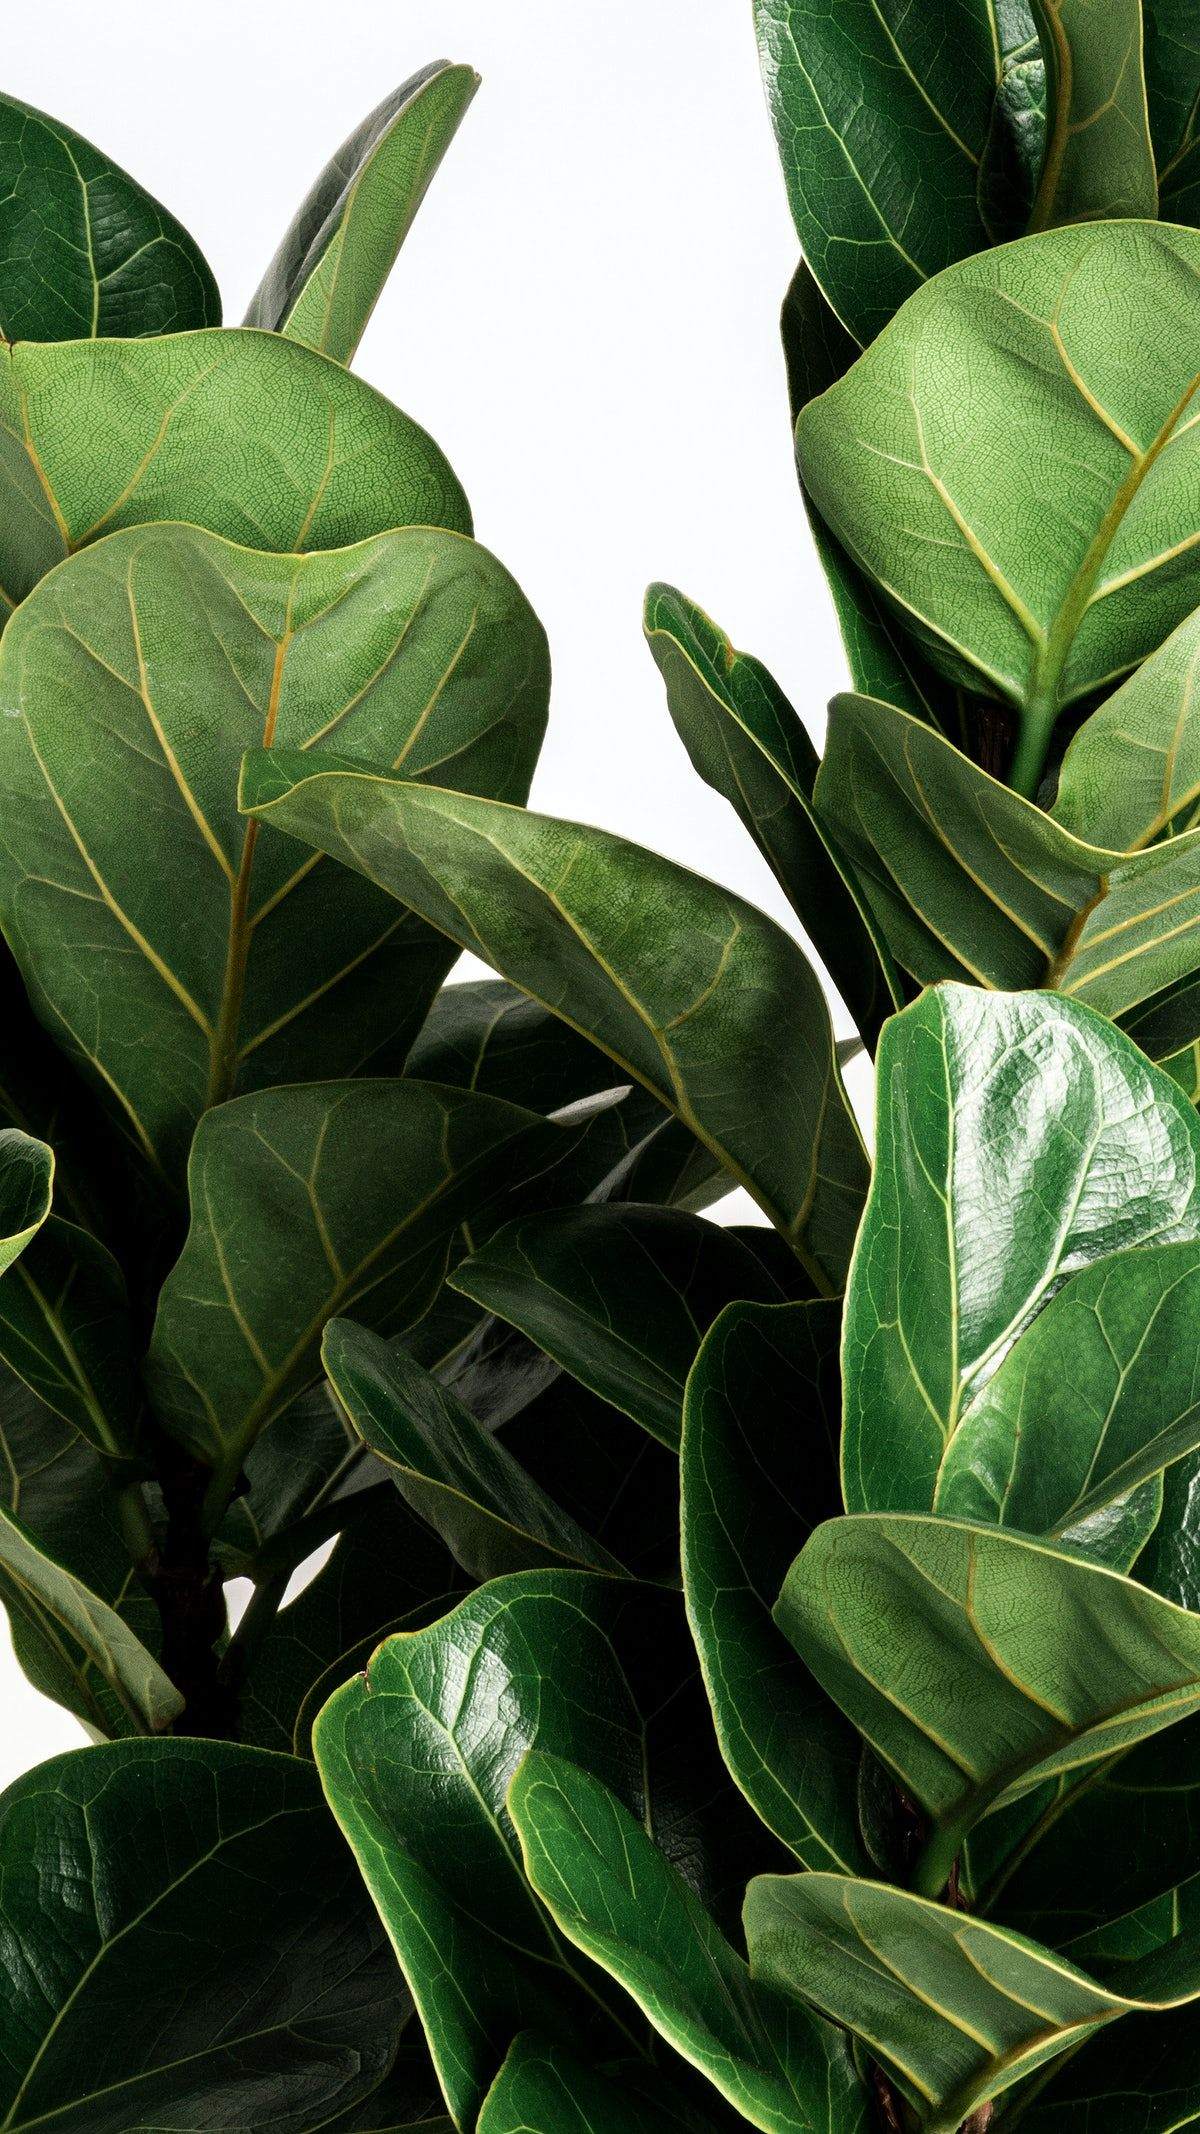 Download premium image of Fiddle-leaf fig plant on an off white background by Jira about iphone wallpapers, Fiddle leaf fig, fiddle leaf fig plant, green, and aesthetic 2355048